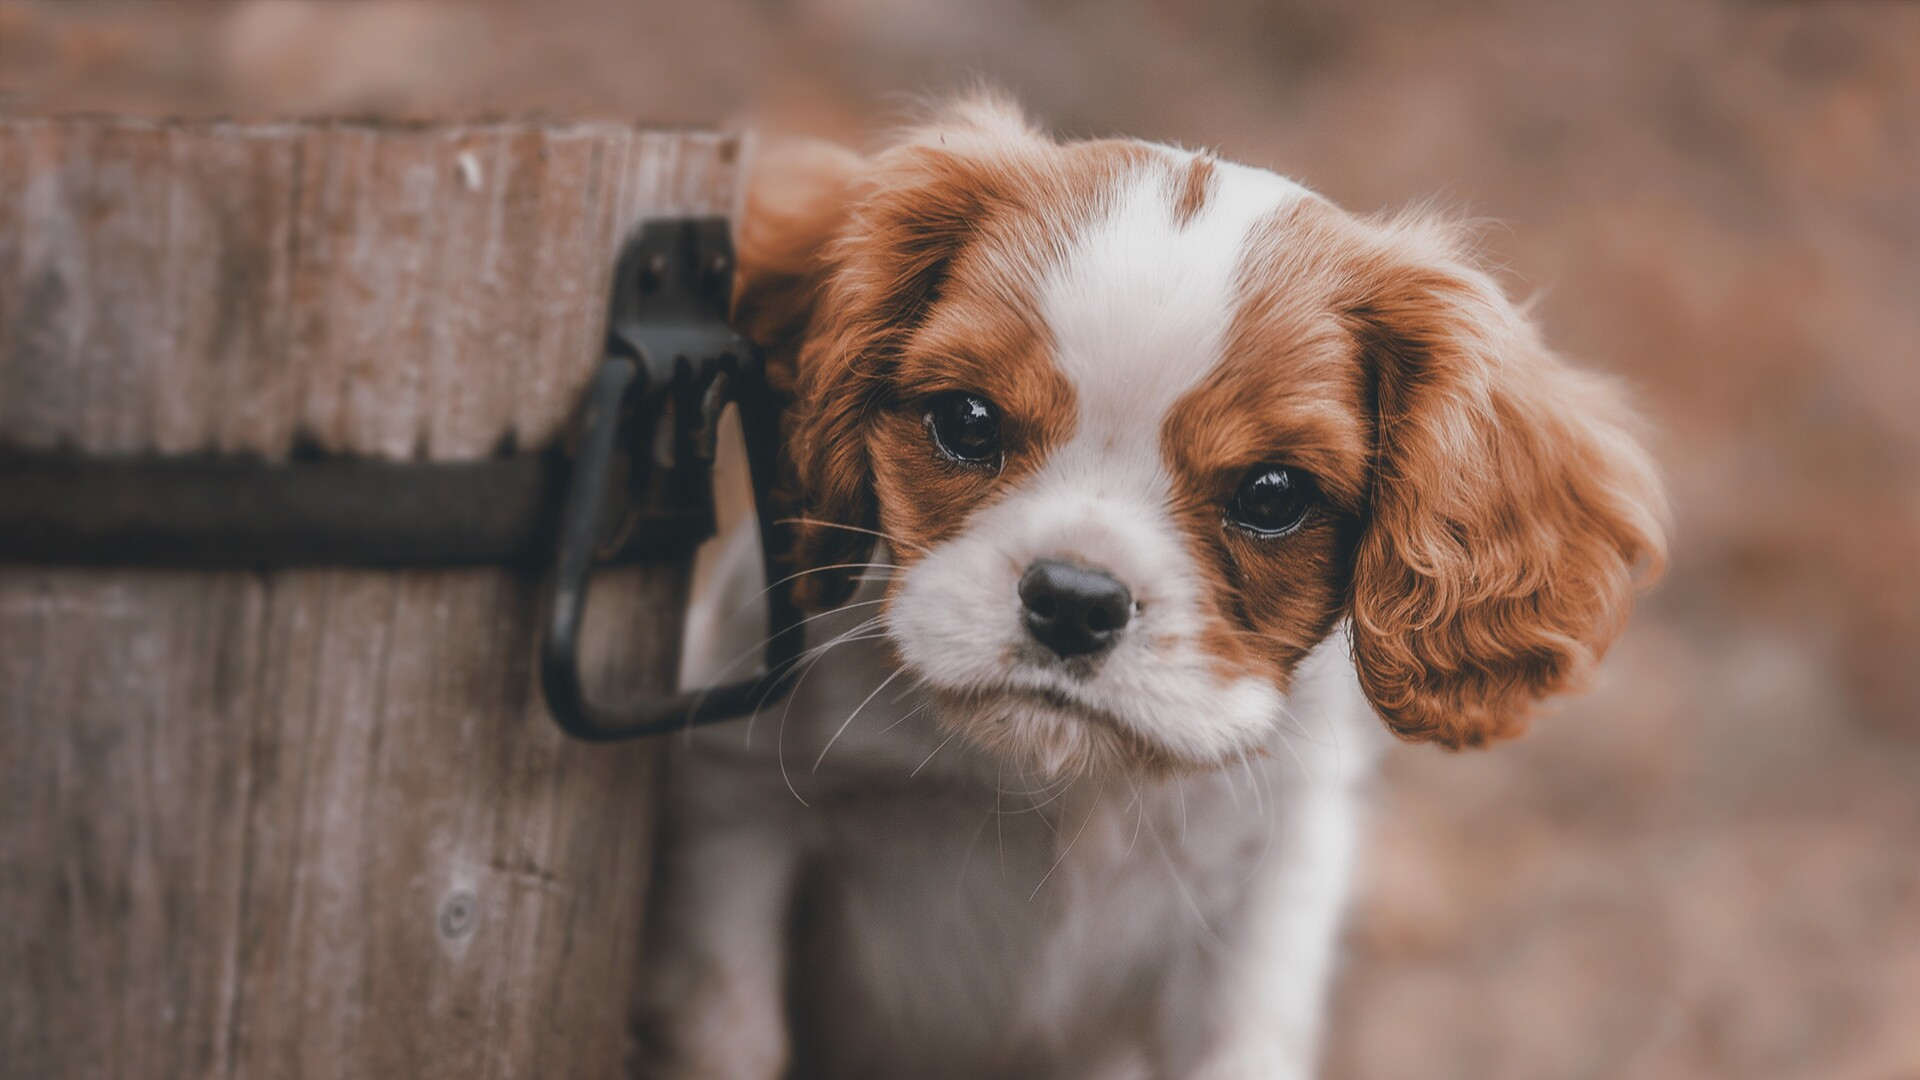 Dogs And Puppies Wallpaper 1920x1080 Cute Puppy L...